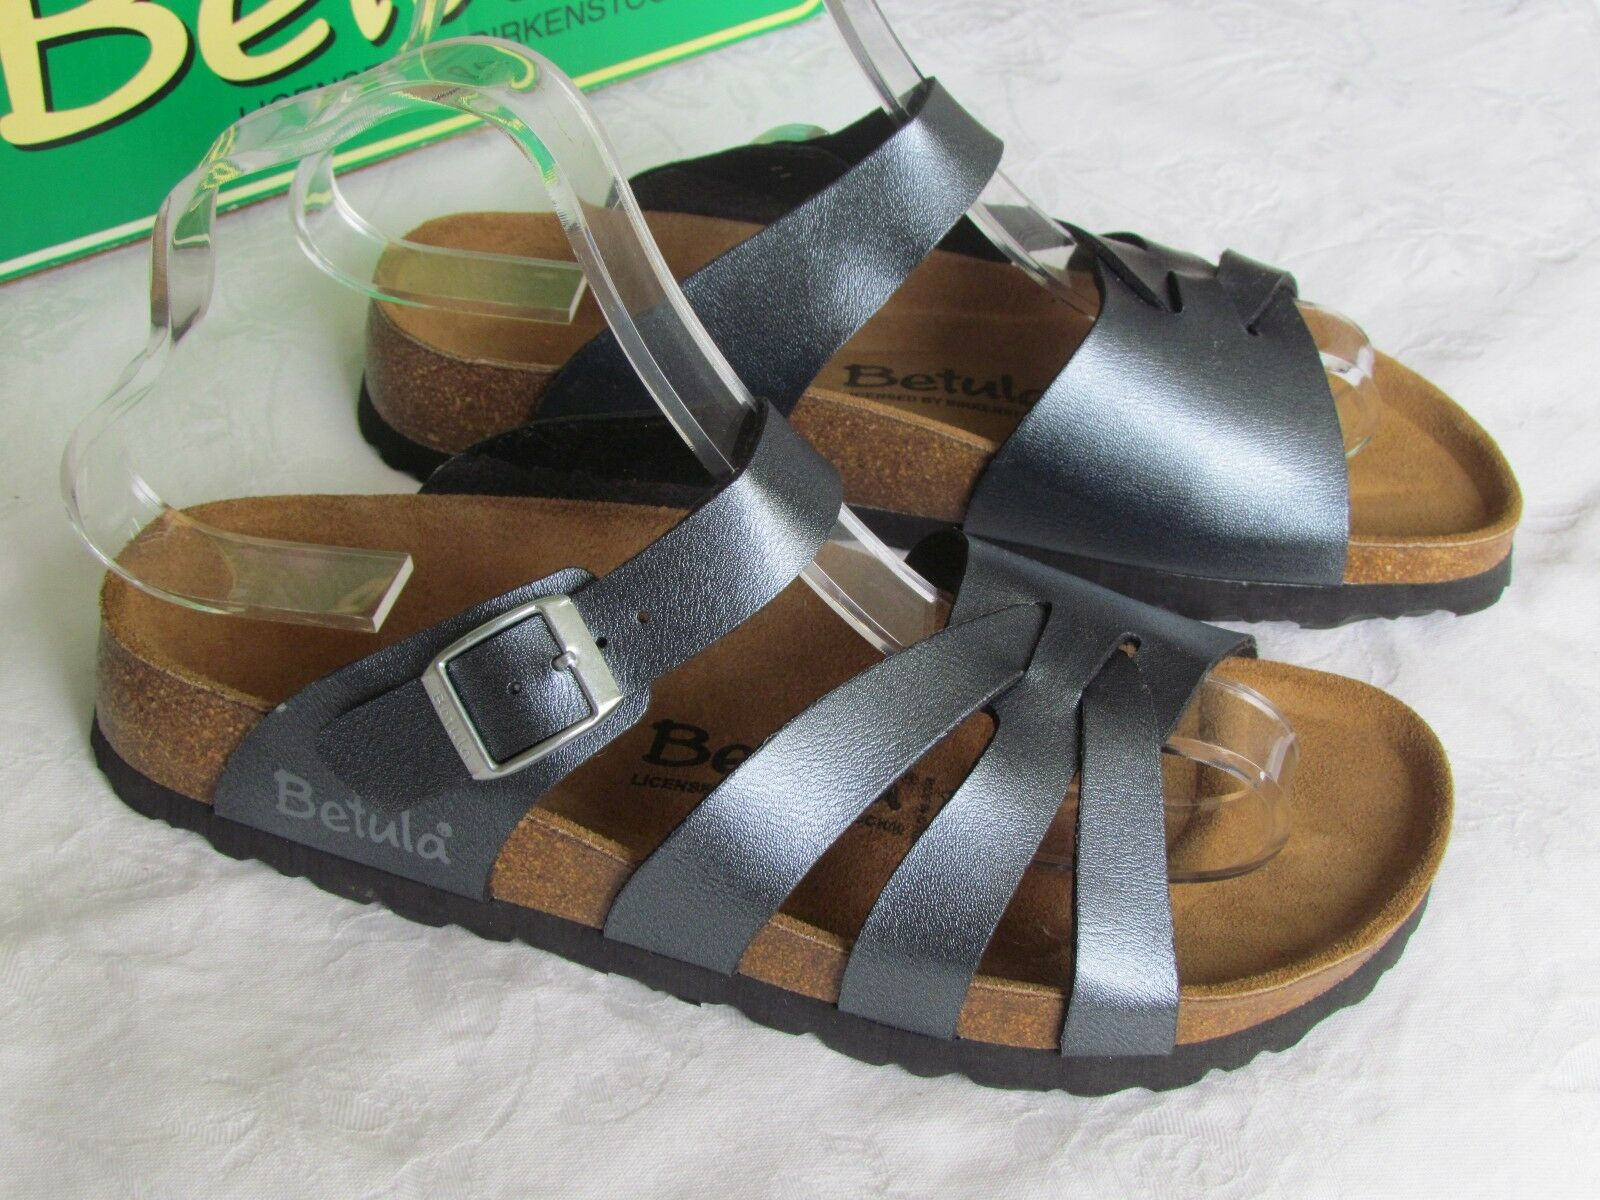 Último gran descuento NEW Betula By Birkenstock Ladies Pearl Anthracite Grey Silver Sandals Size 4.5